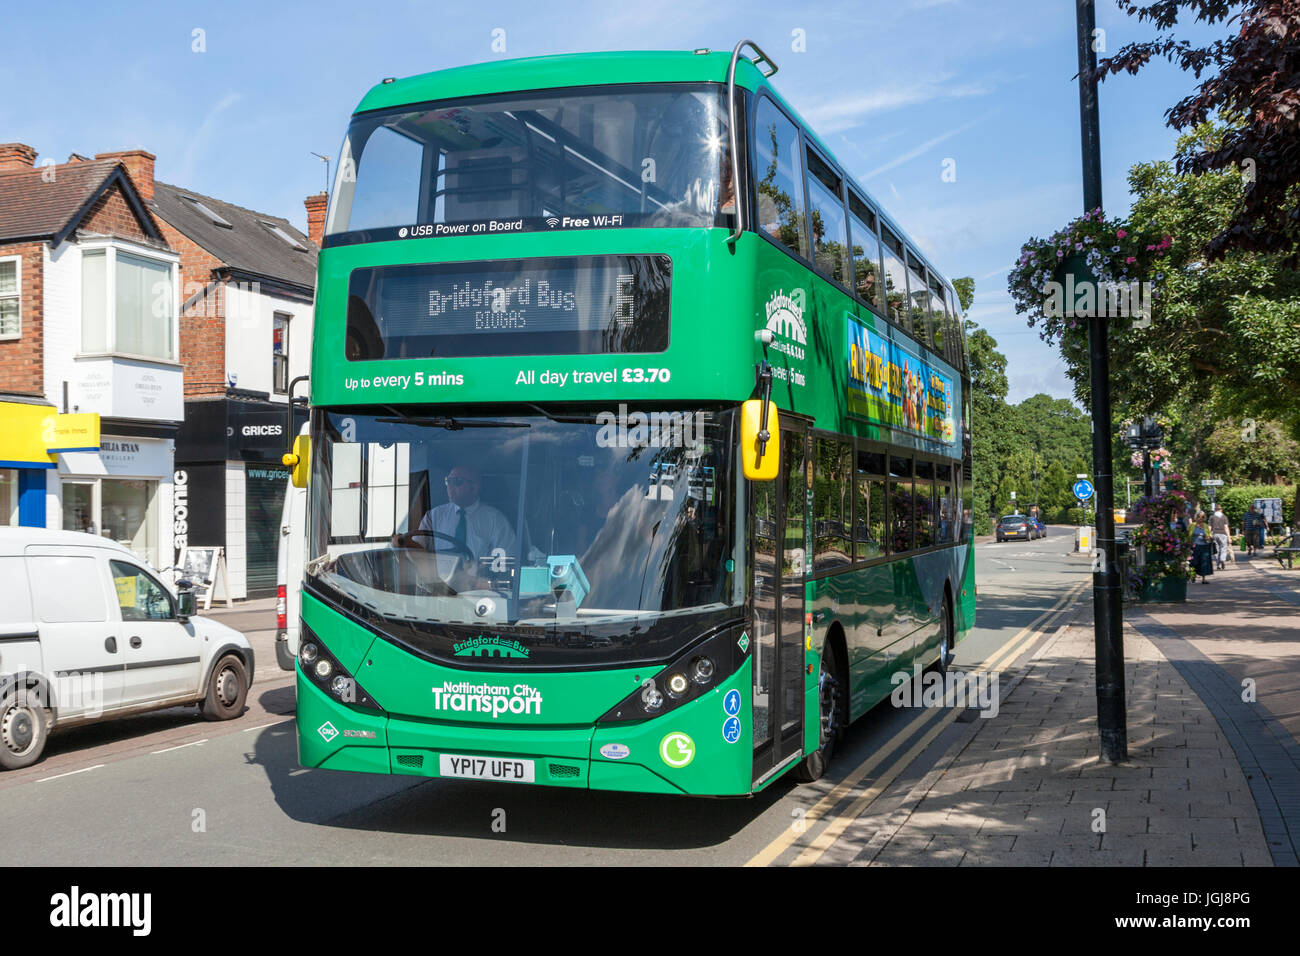 Nottingham City Transport Nct Biogas Bus In West Bridgford Nottinghamshire England Uk